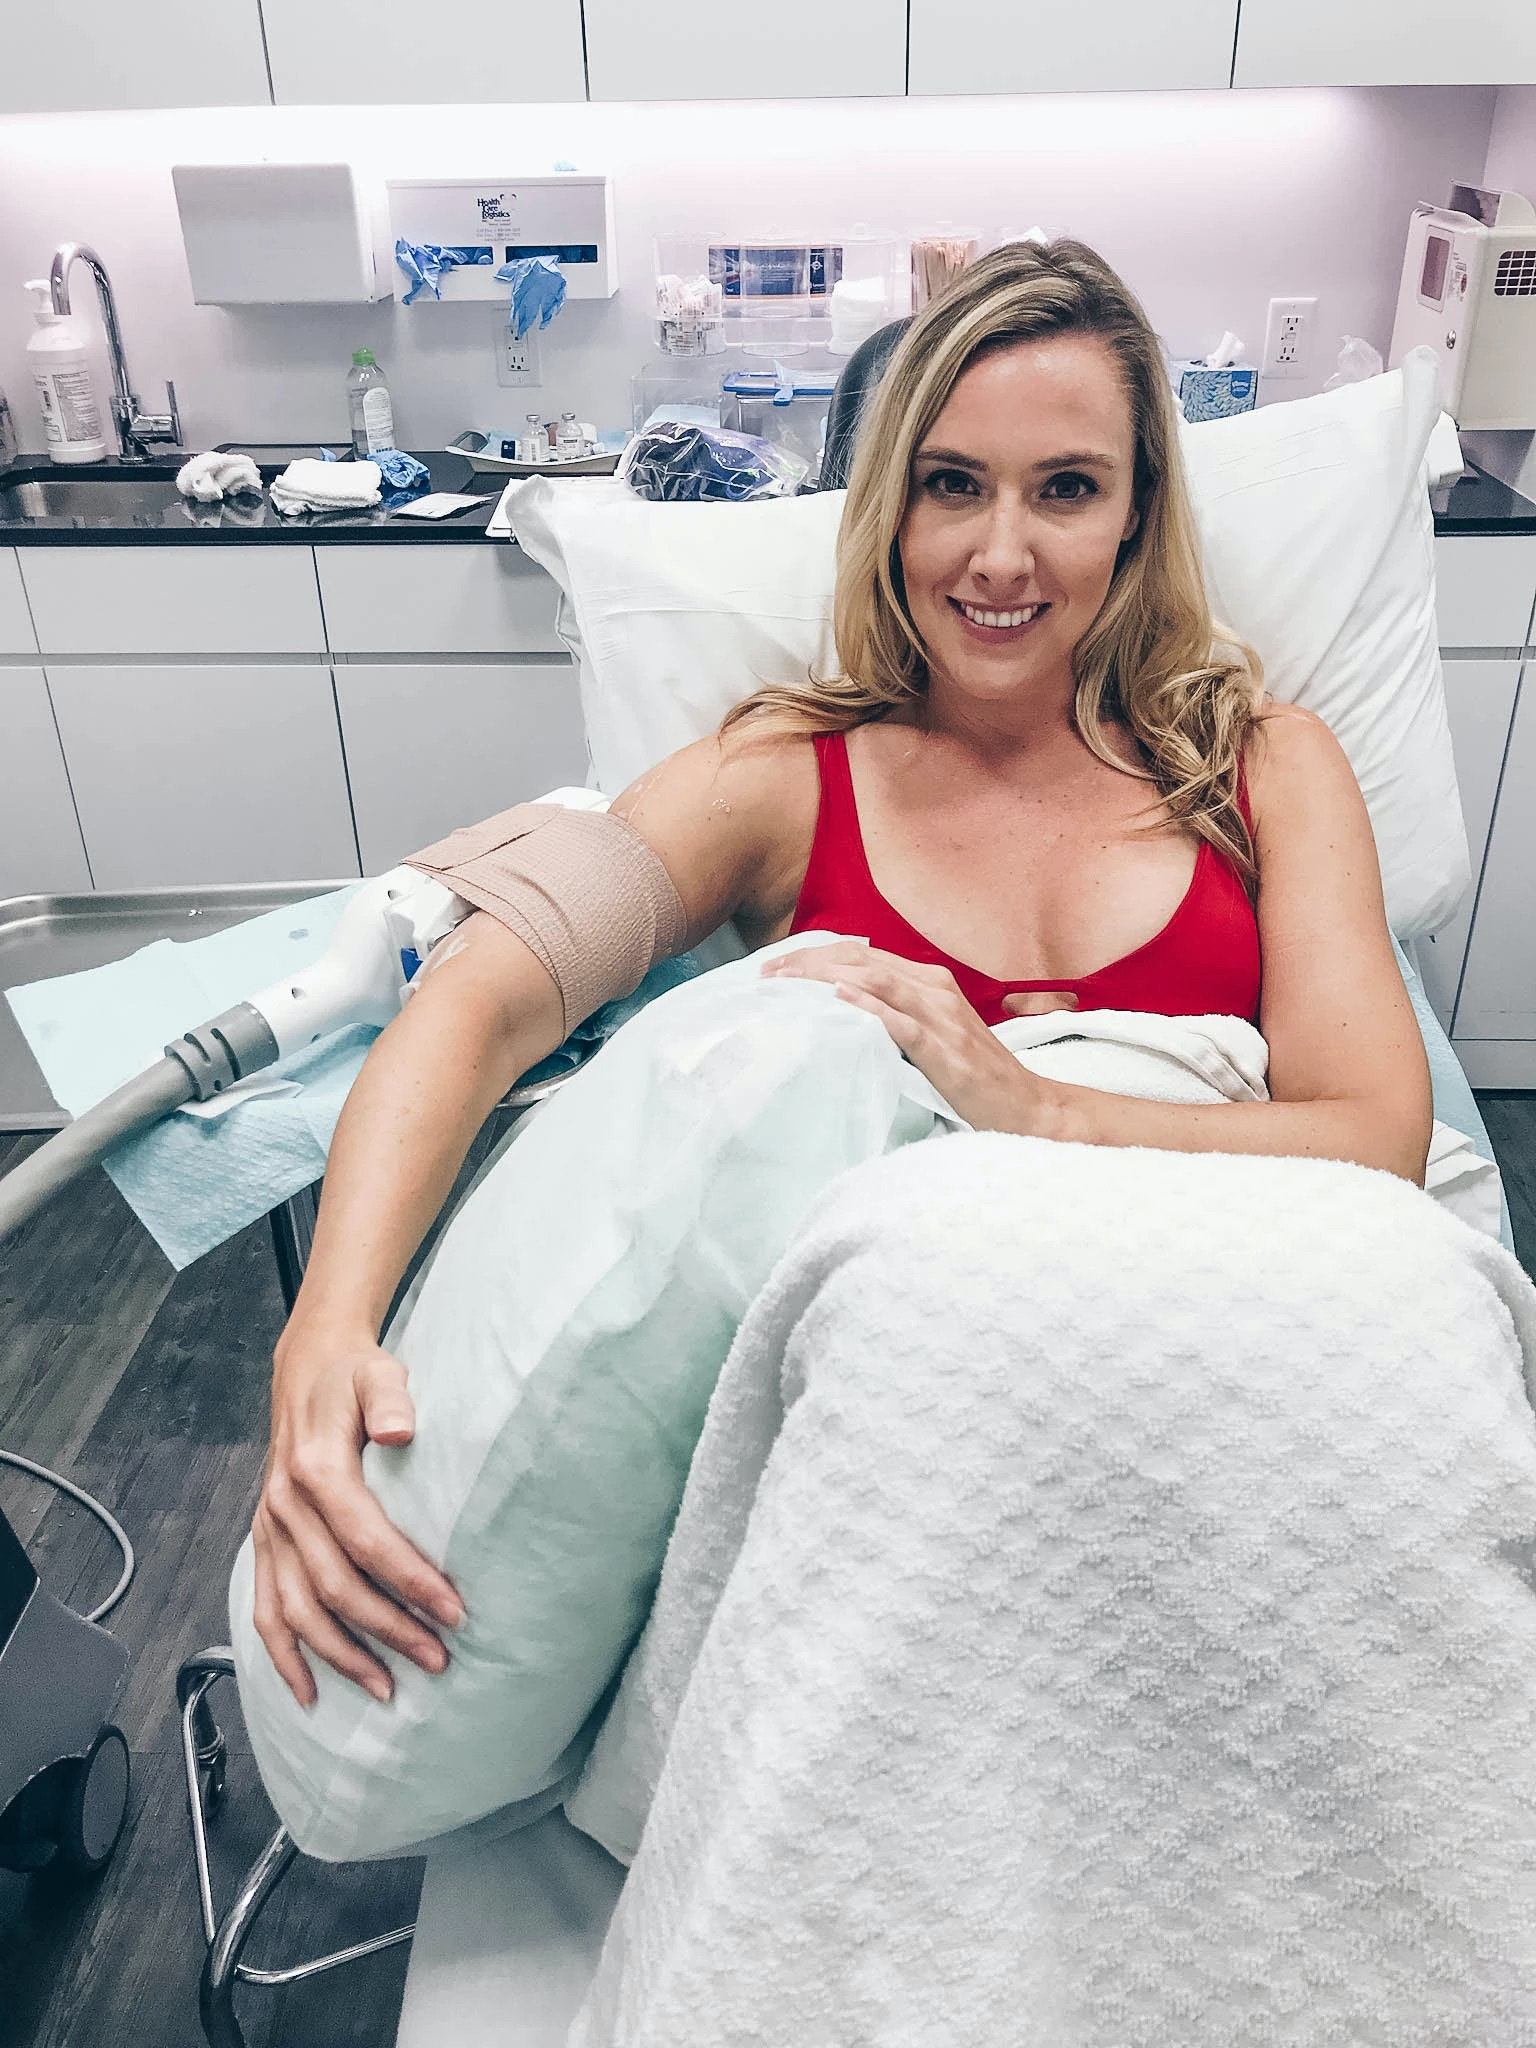 Cristina Gibson during her first CoolSculpting treatment.